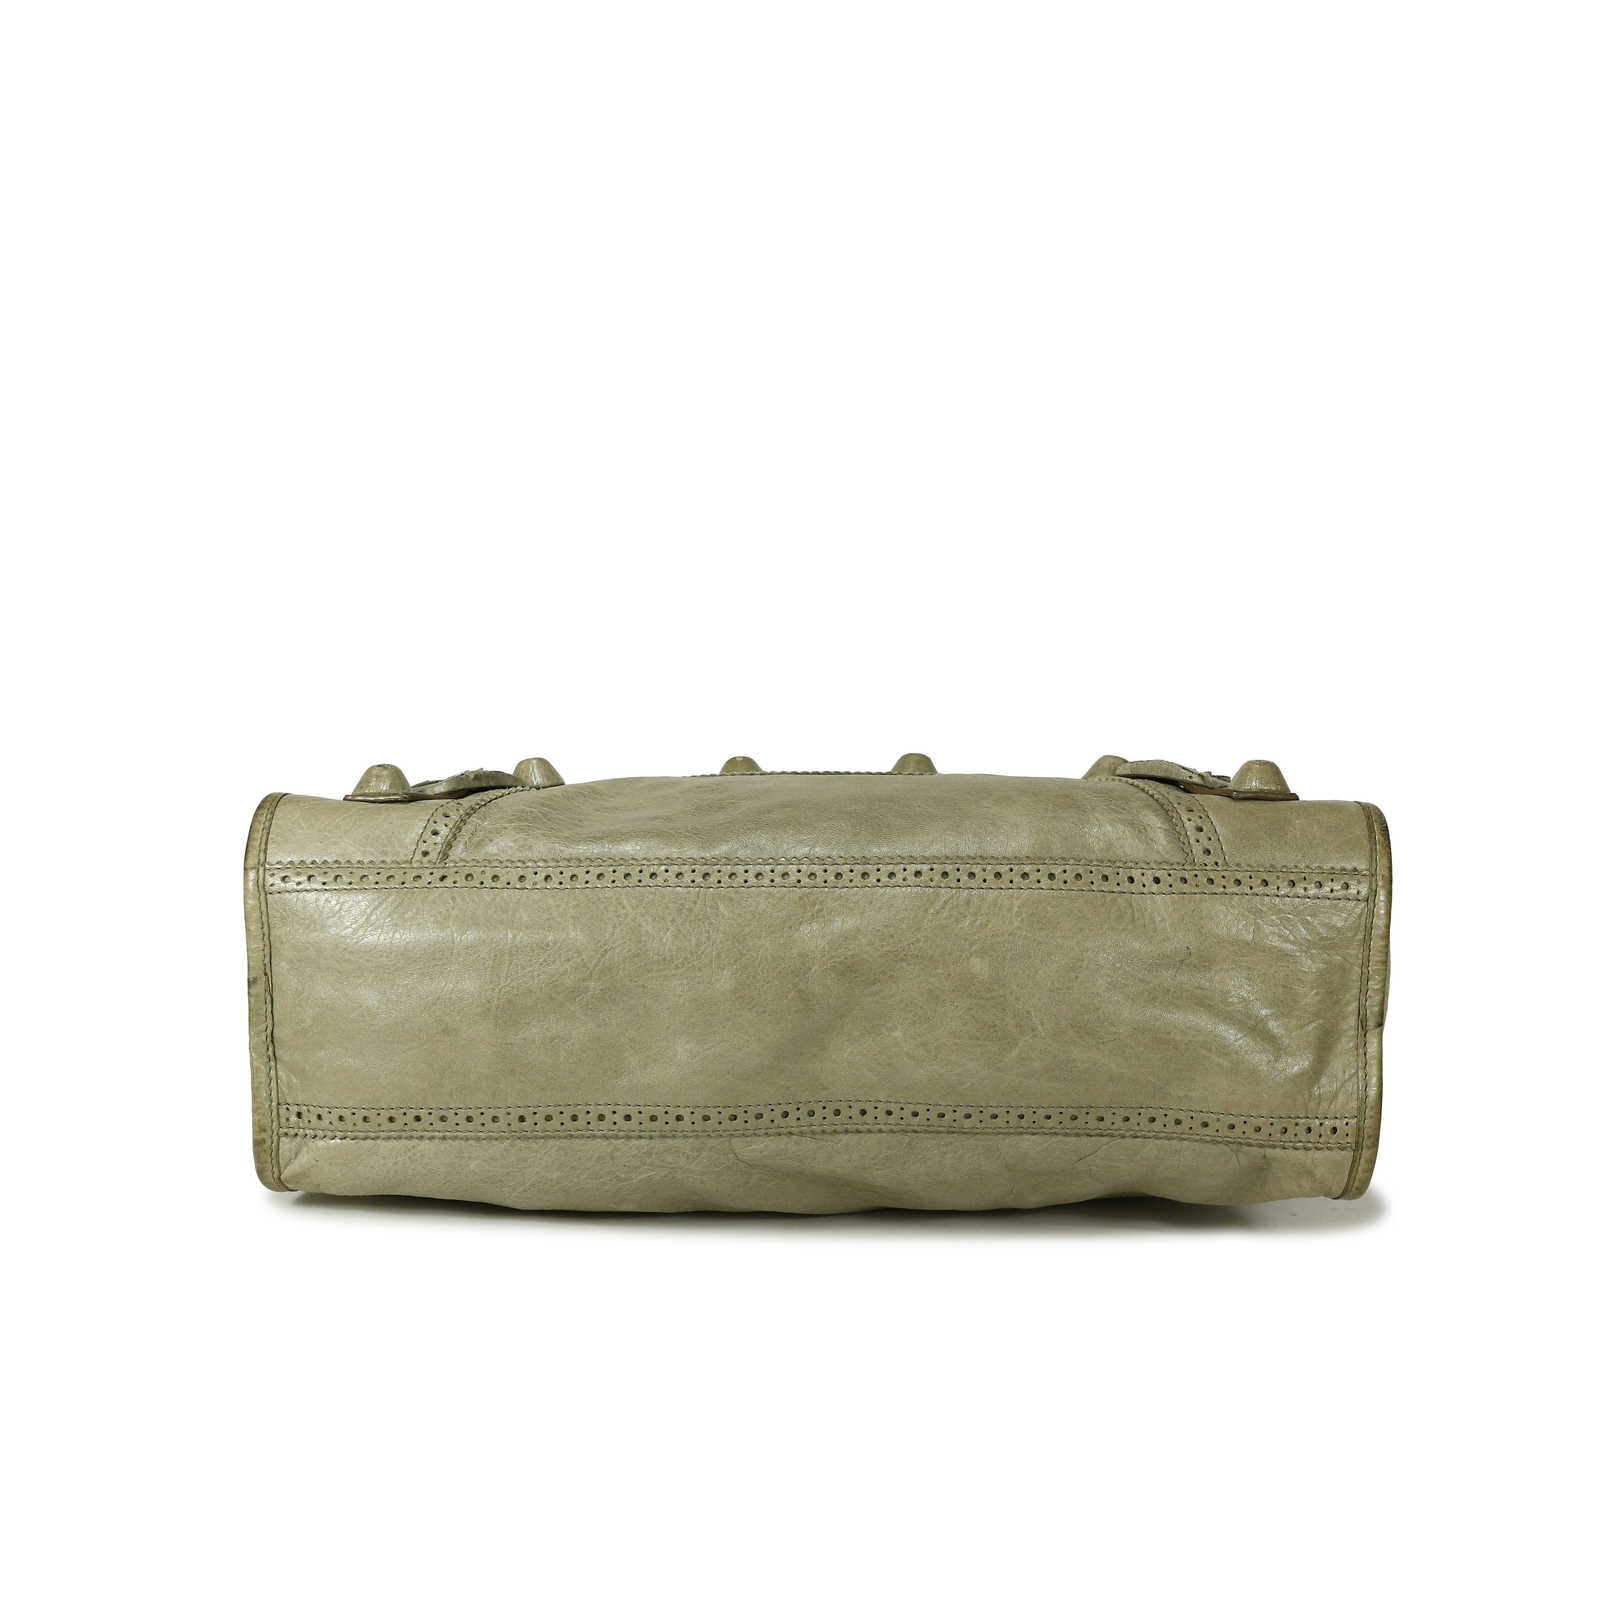 a3b878f1142c ... Authentic Second Hand Balenciaga Giant Motorcycle City Bag  (PSS-139-00002) ...